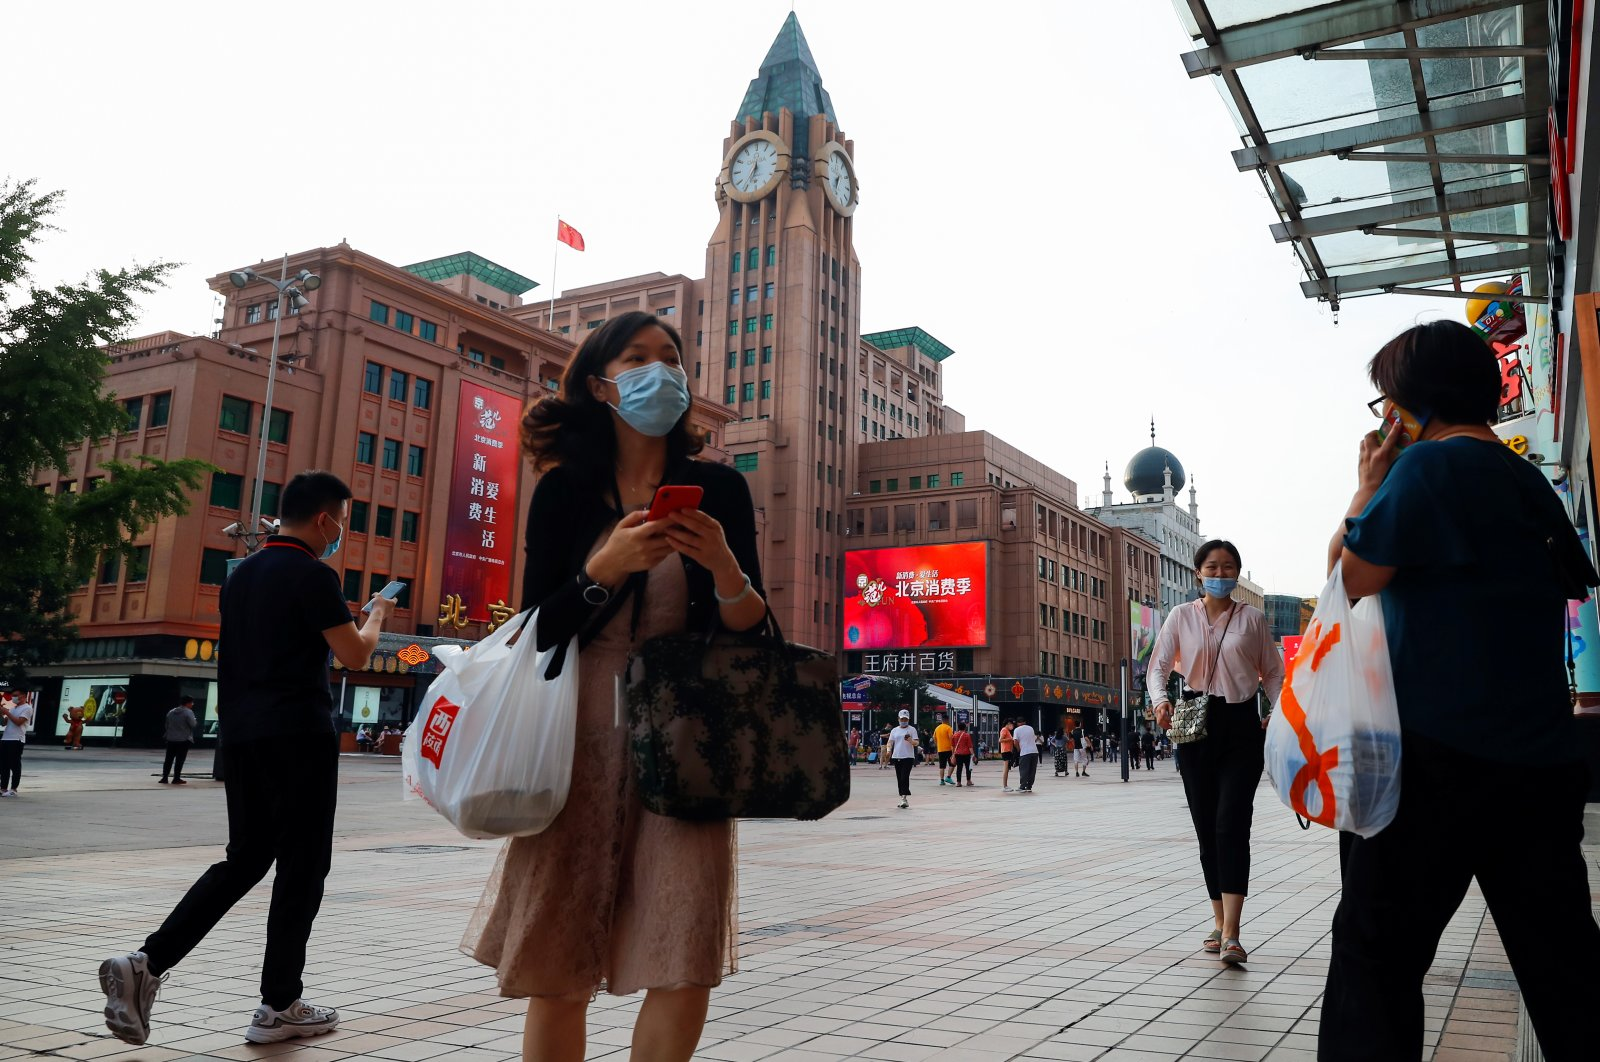 People walk past a department store of the Wangfuijing Group in Beijing, China, June 10, 2020. (Reuters Photo)